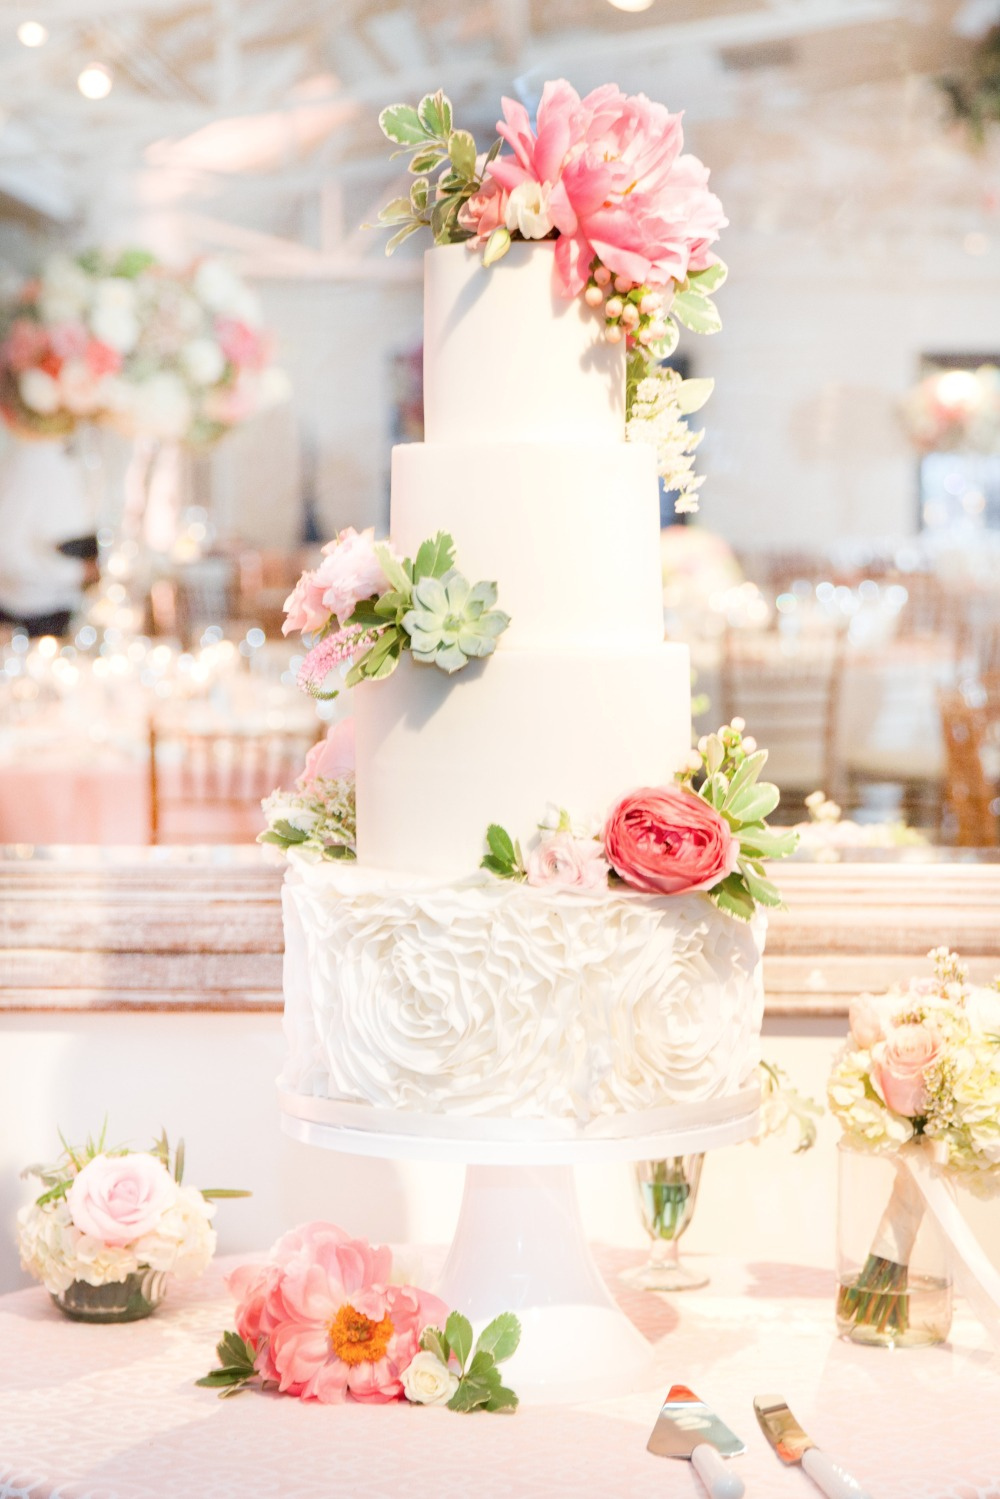 Four tier white wedding cake with florals